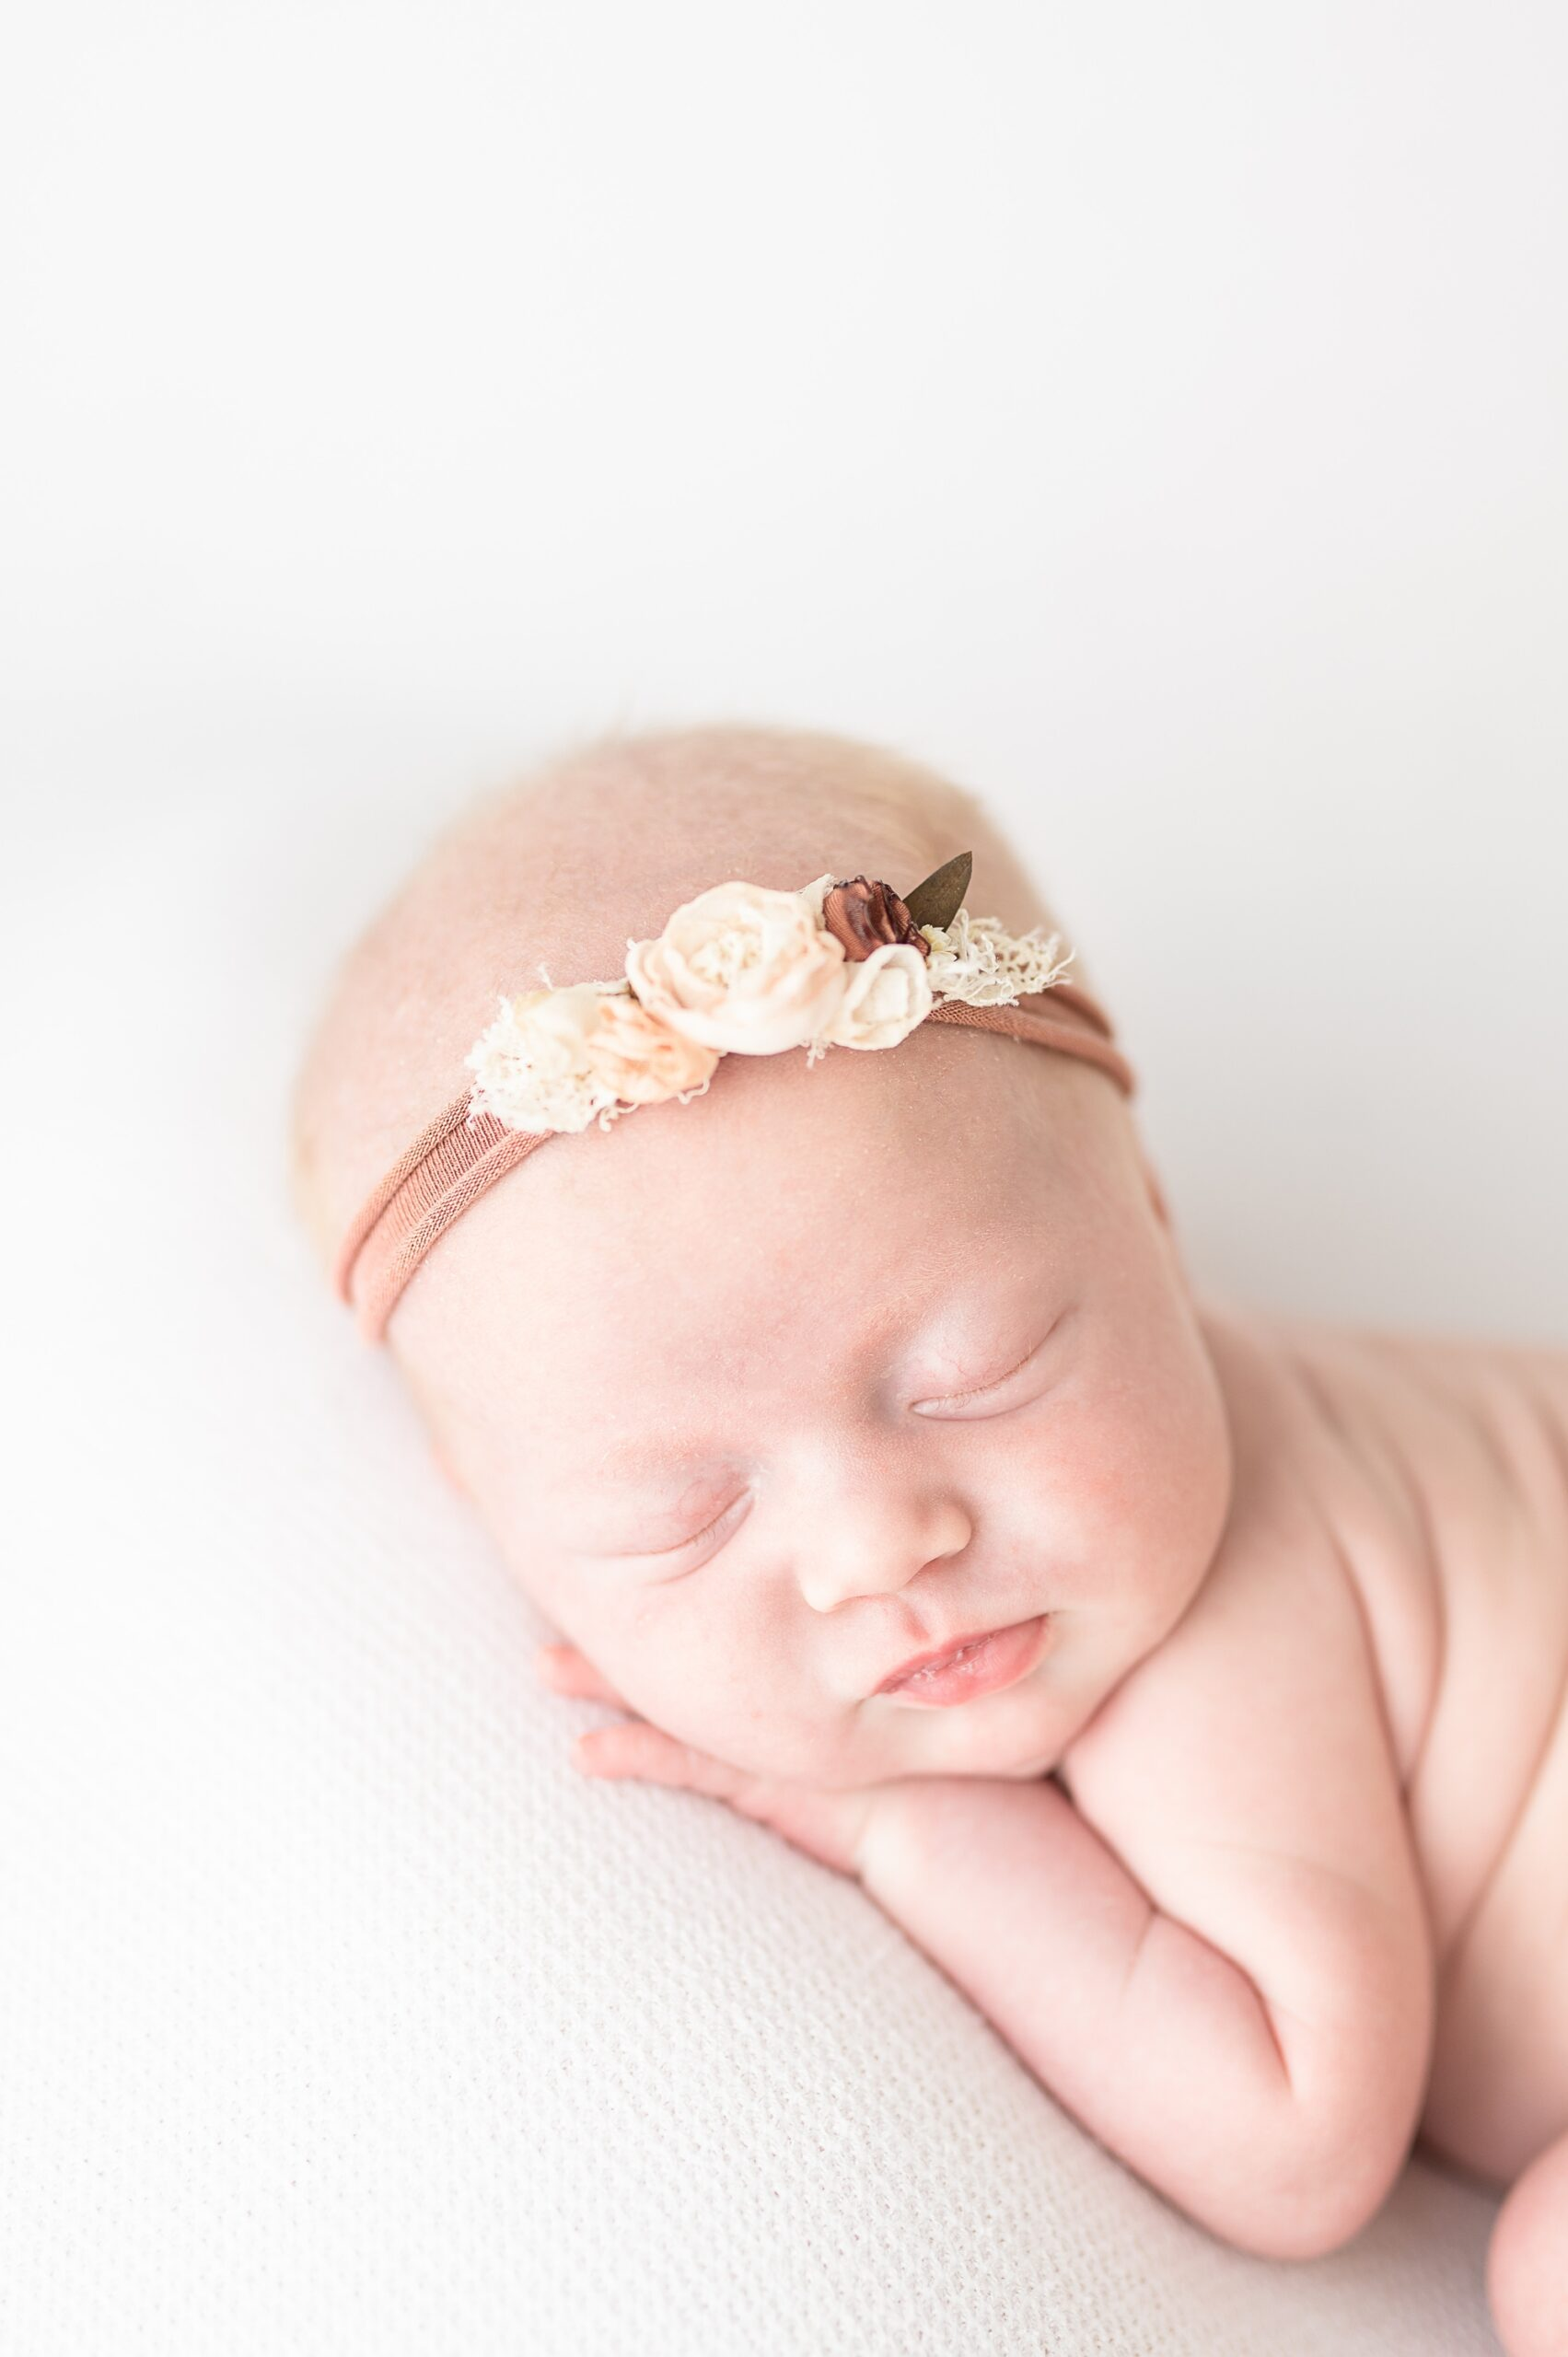 Image of baby with headband in studio newborn session. Photo by Aimee Hamilton Photography.